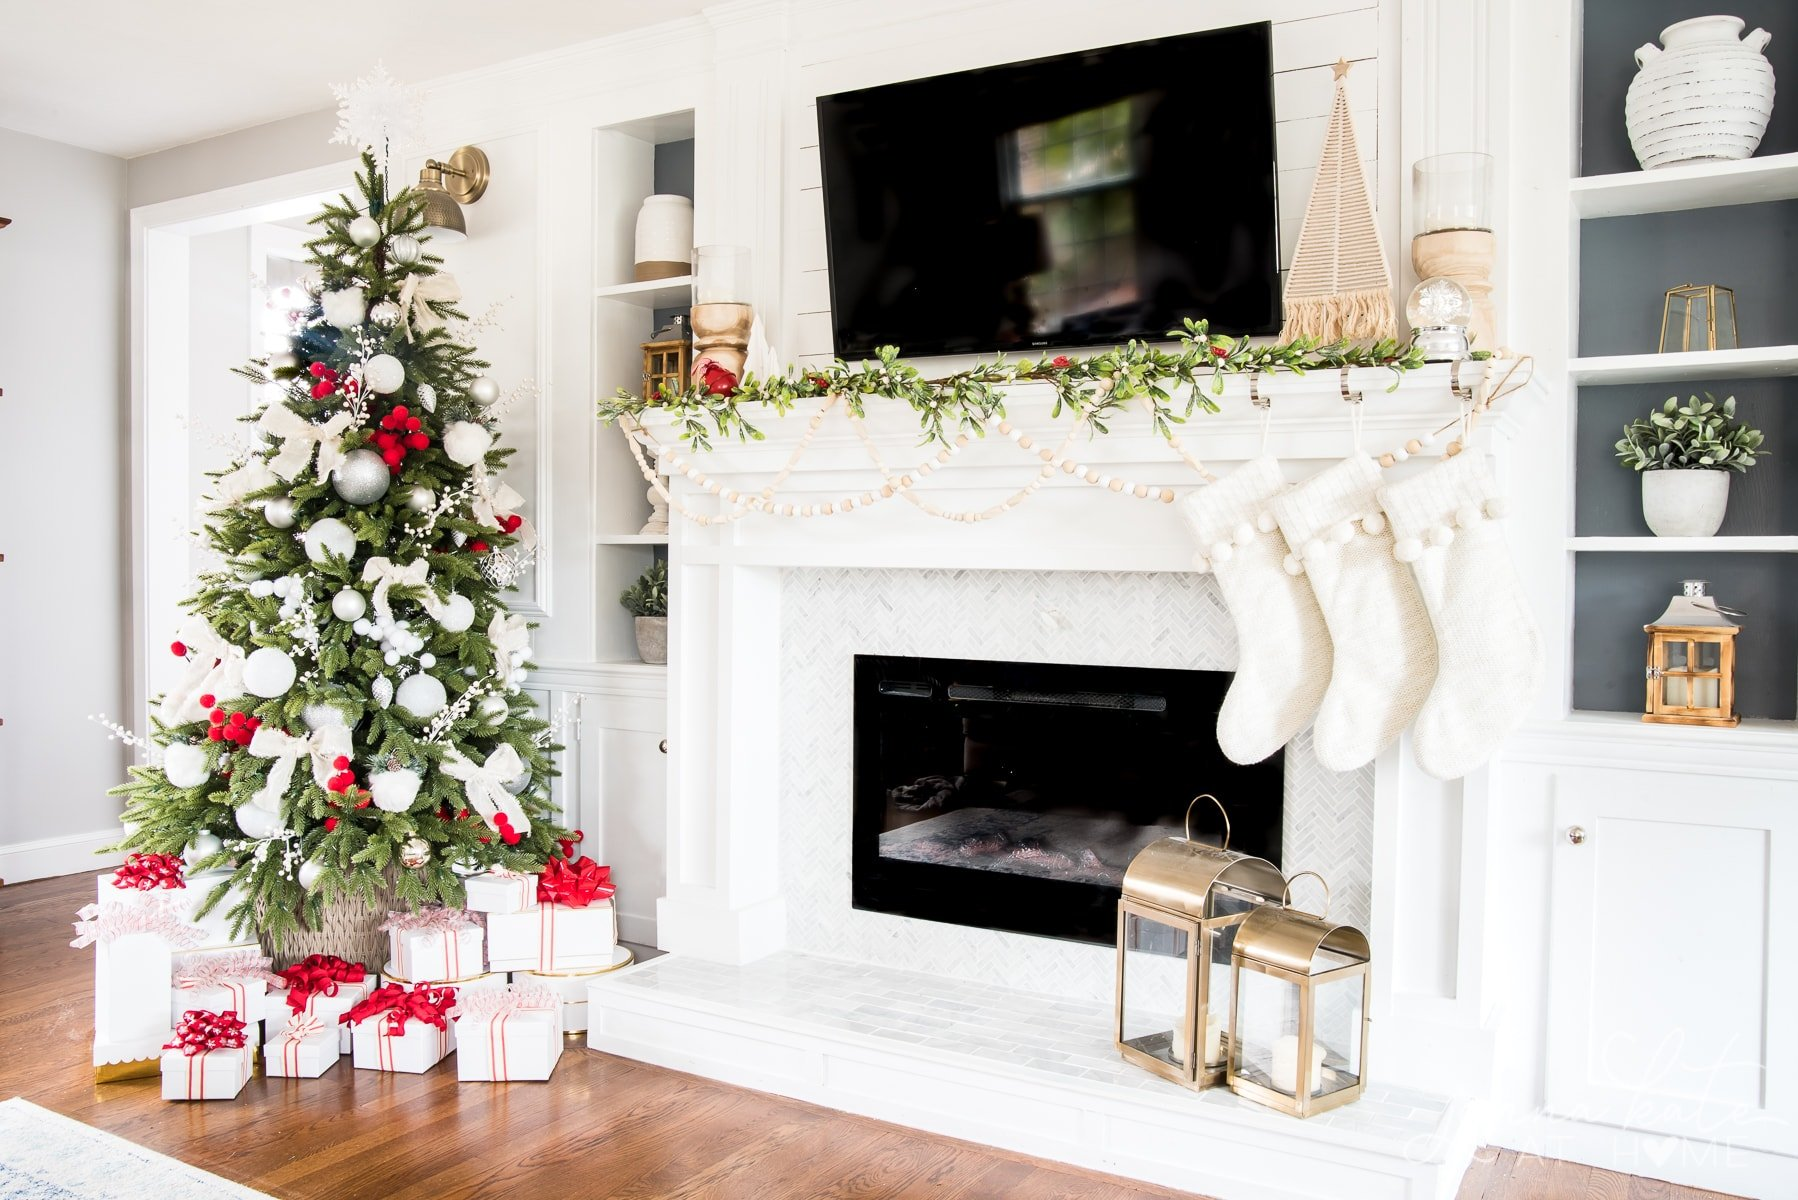 Christmas mantel with simple decorations